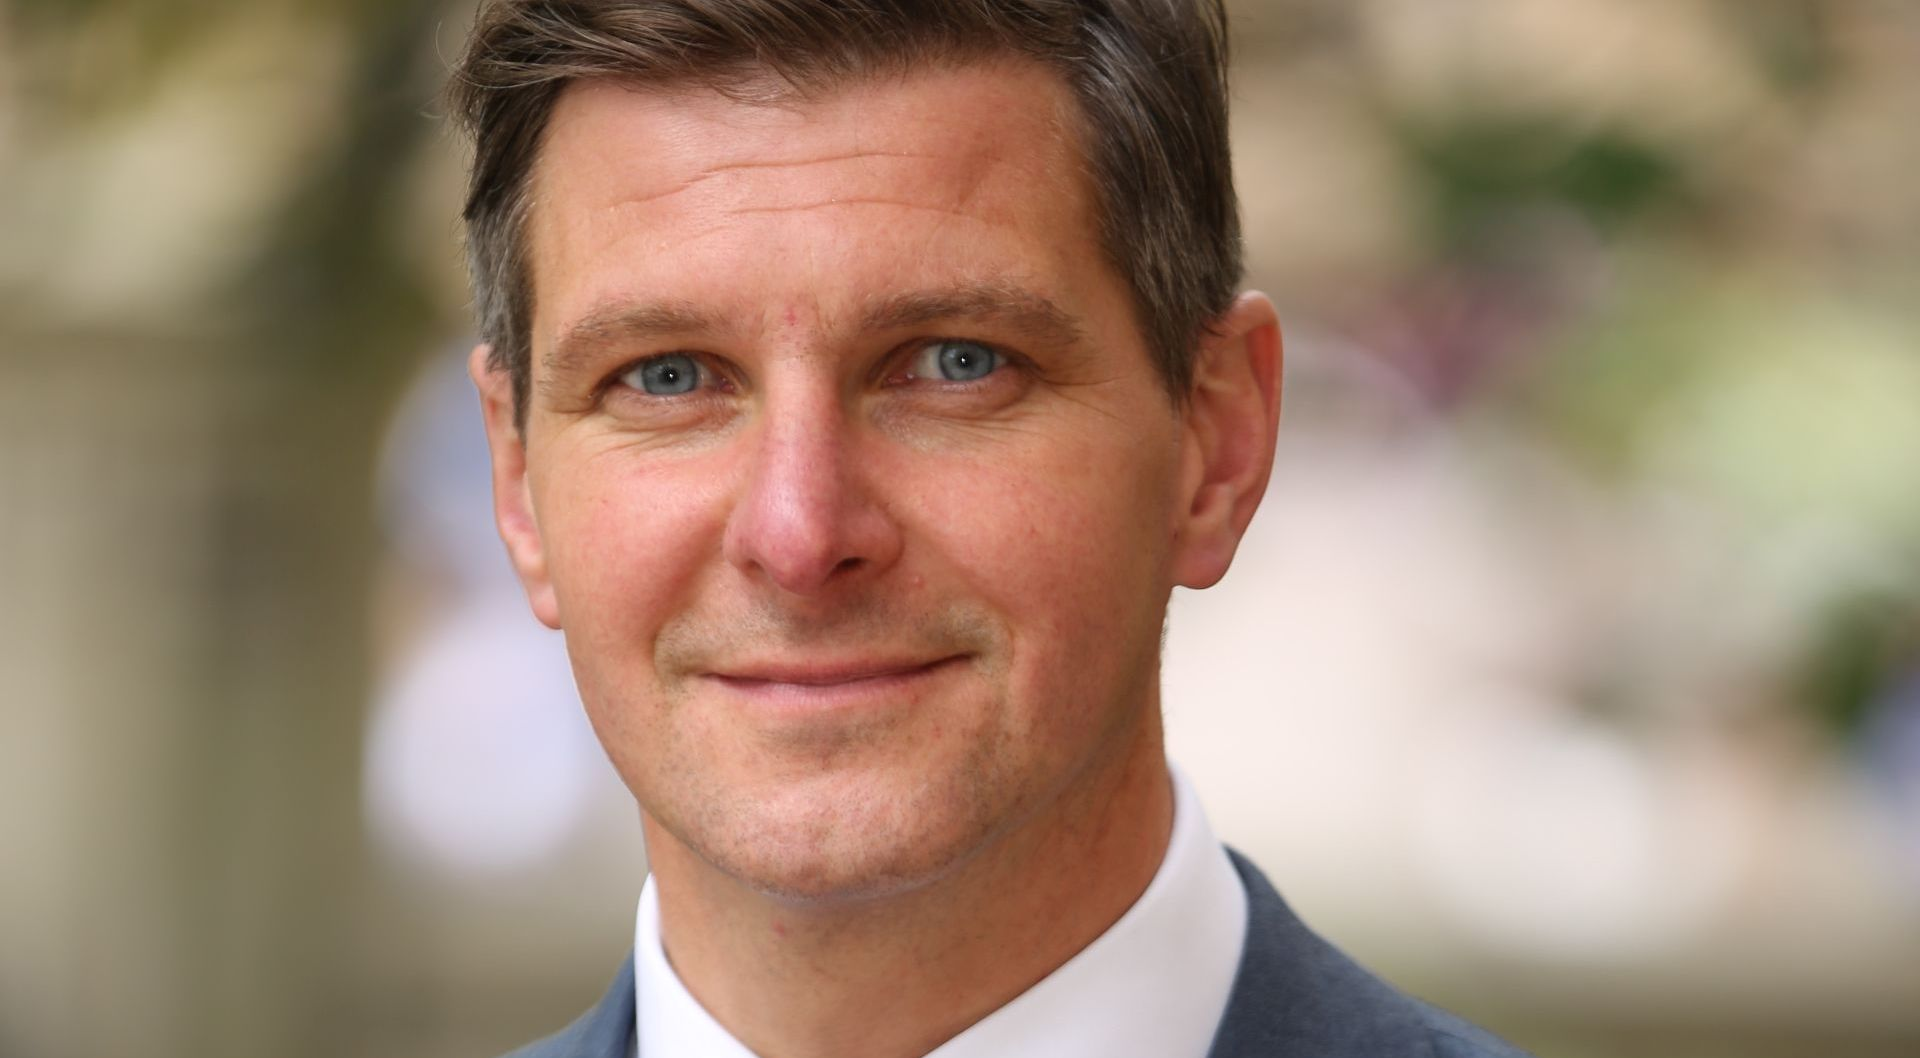 The-Glasgow-Academy-launches-innovation-fund-for-Scottish-education-matthew-pearce